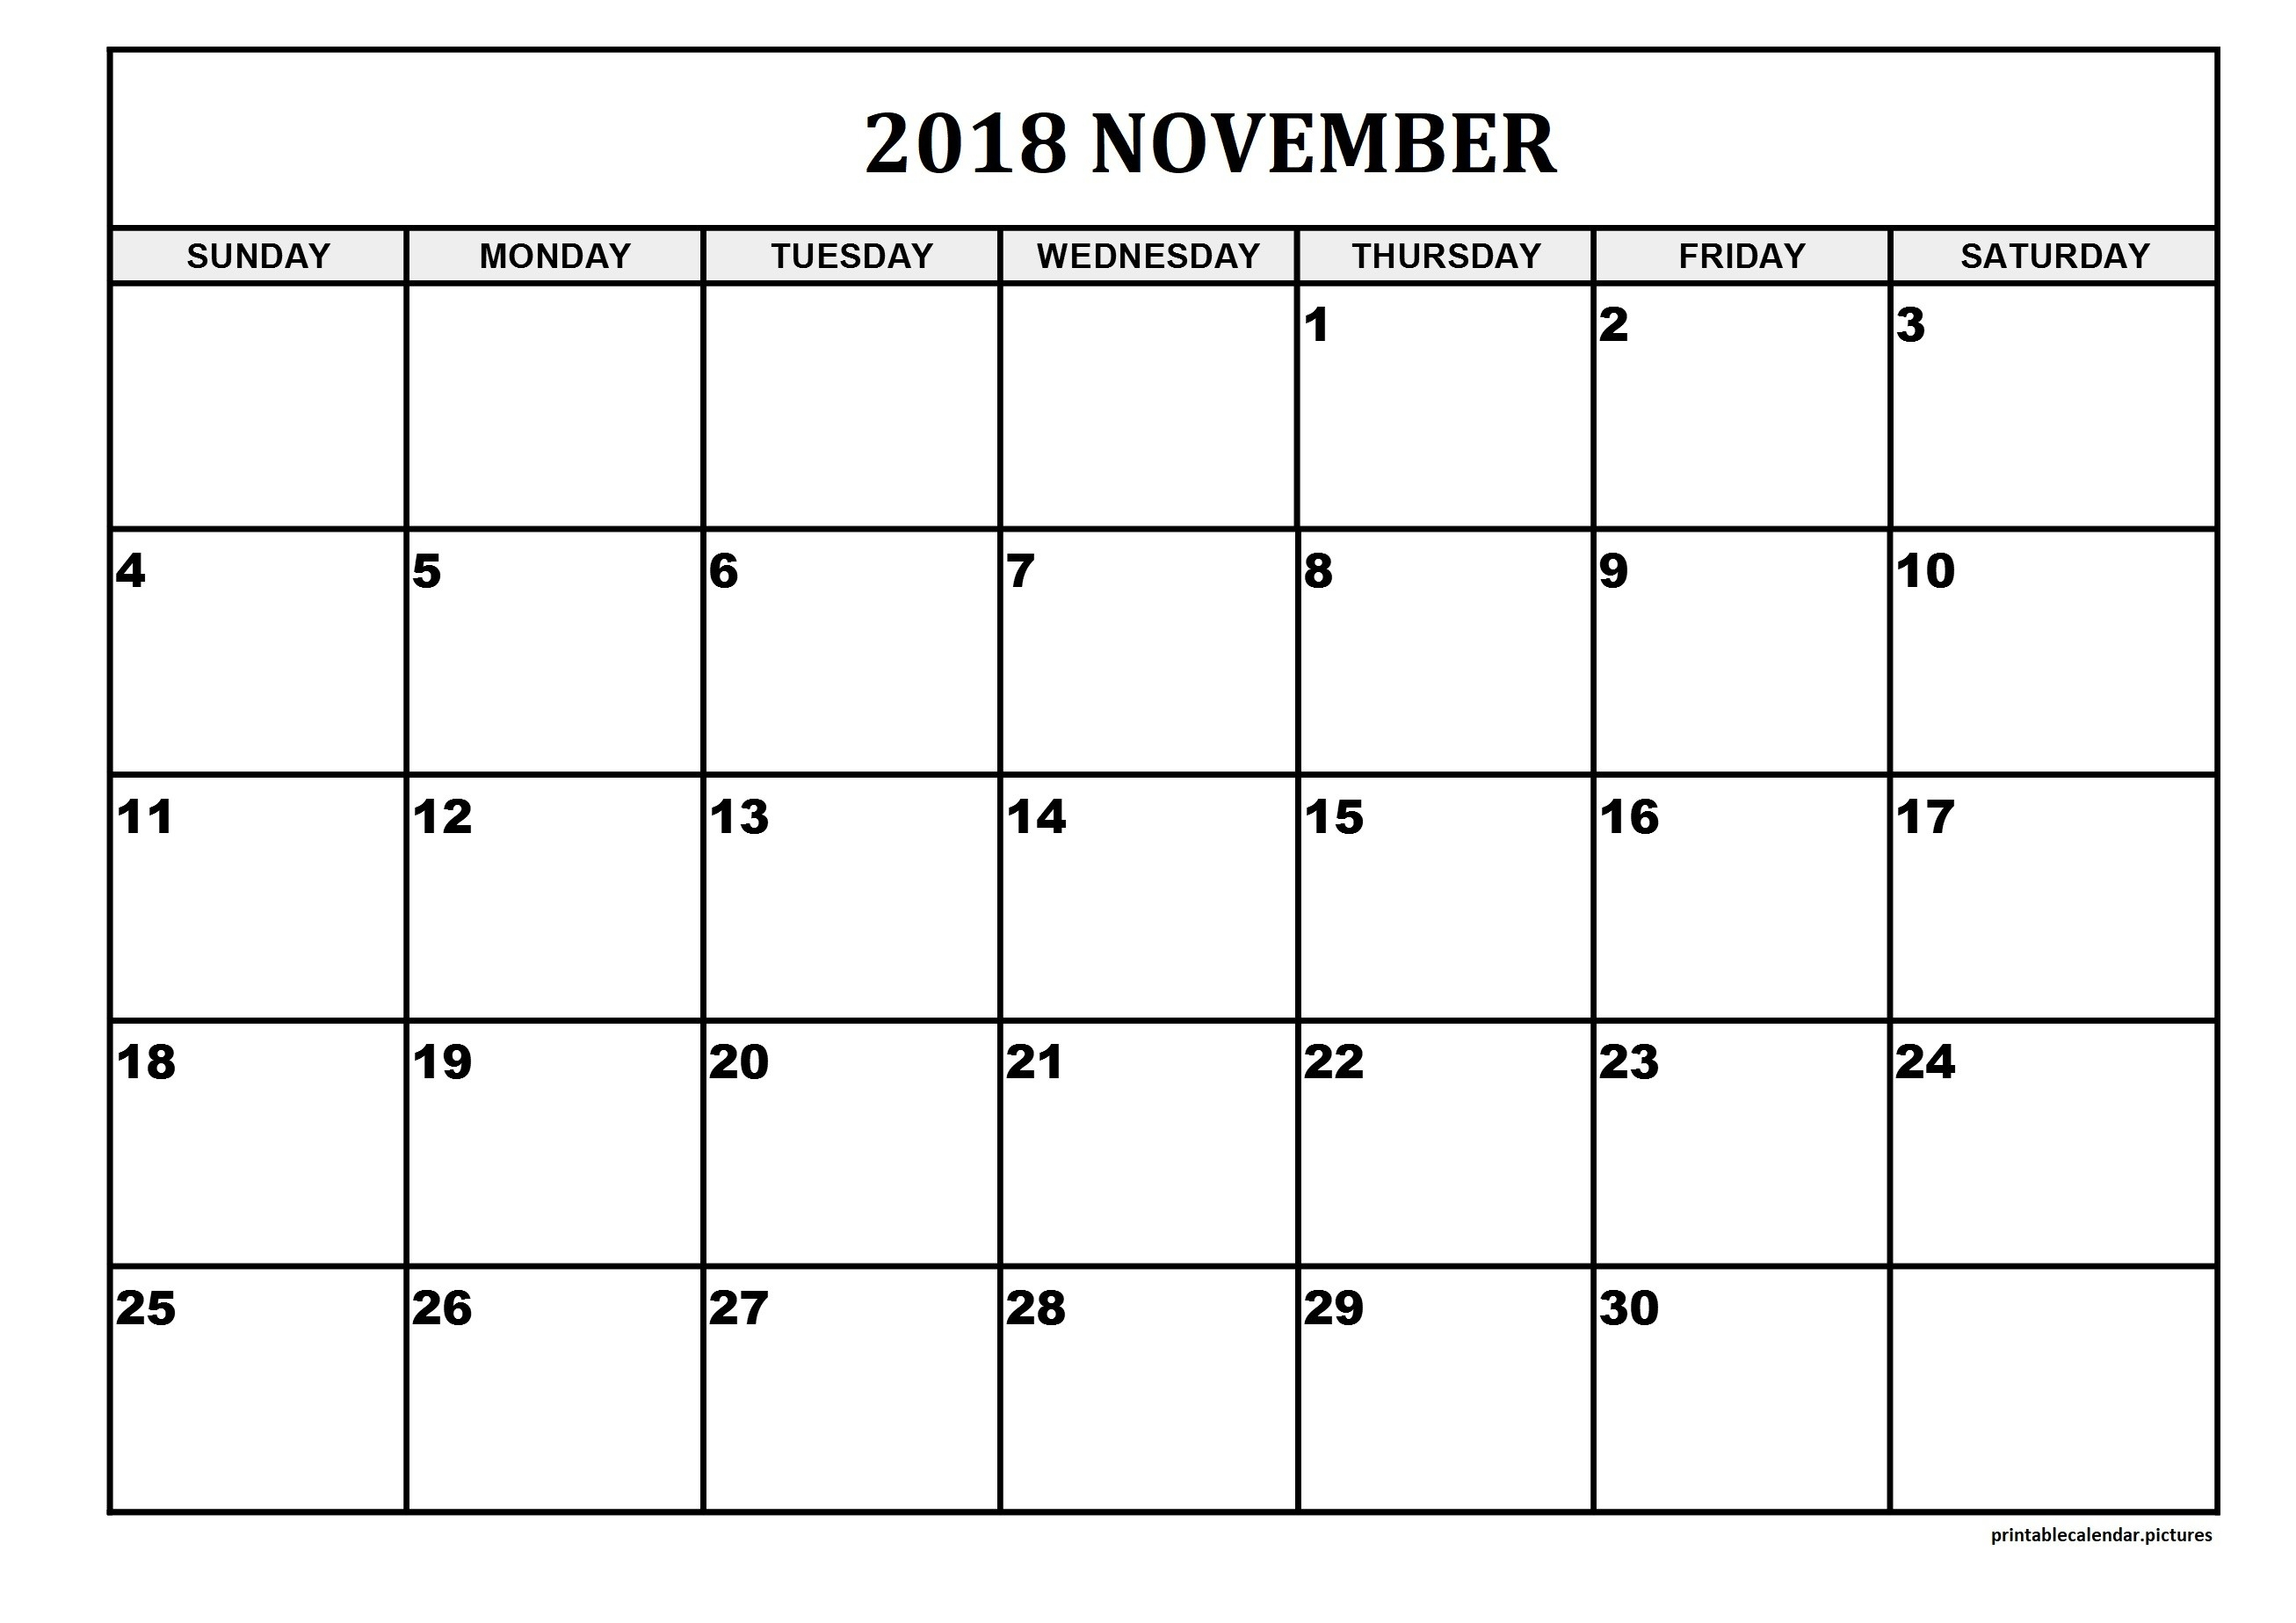 Large Squares Calendar For December 2019 | Example Calendar in Calendar With Large Squares